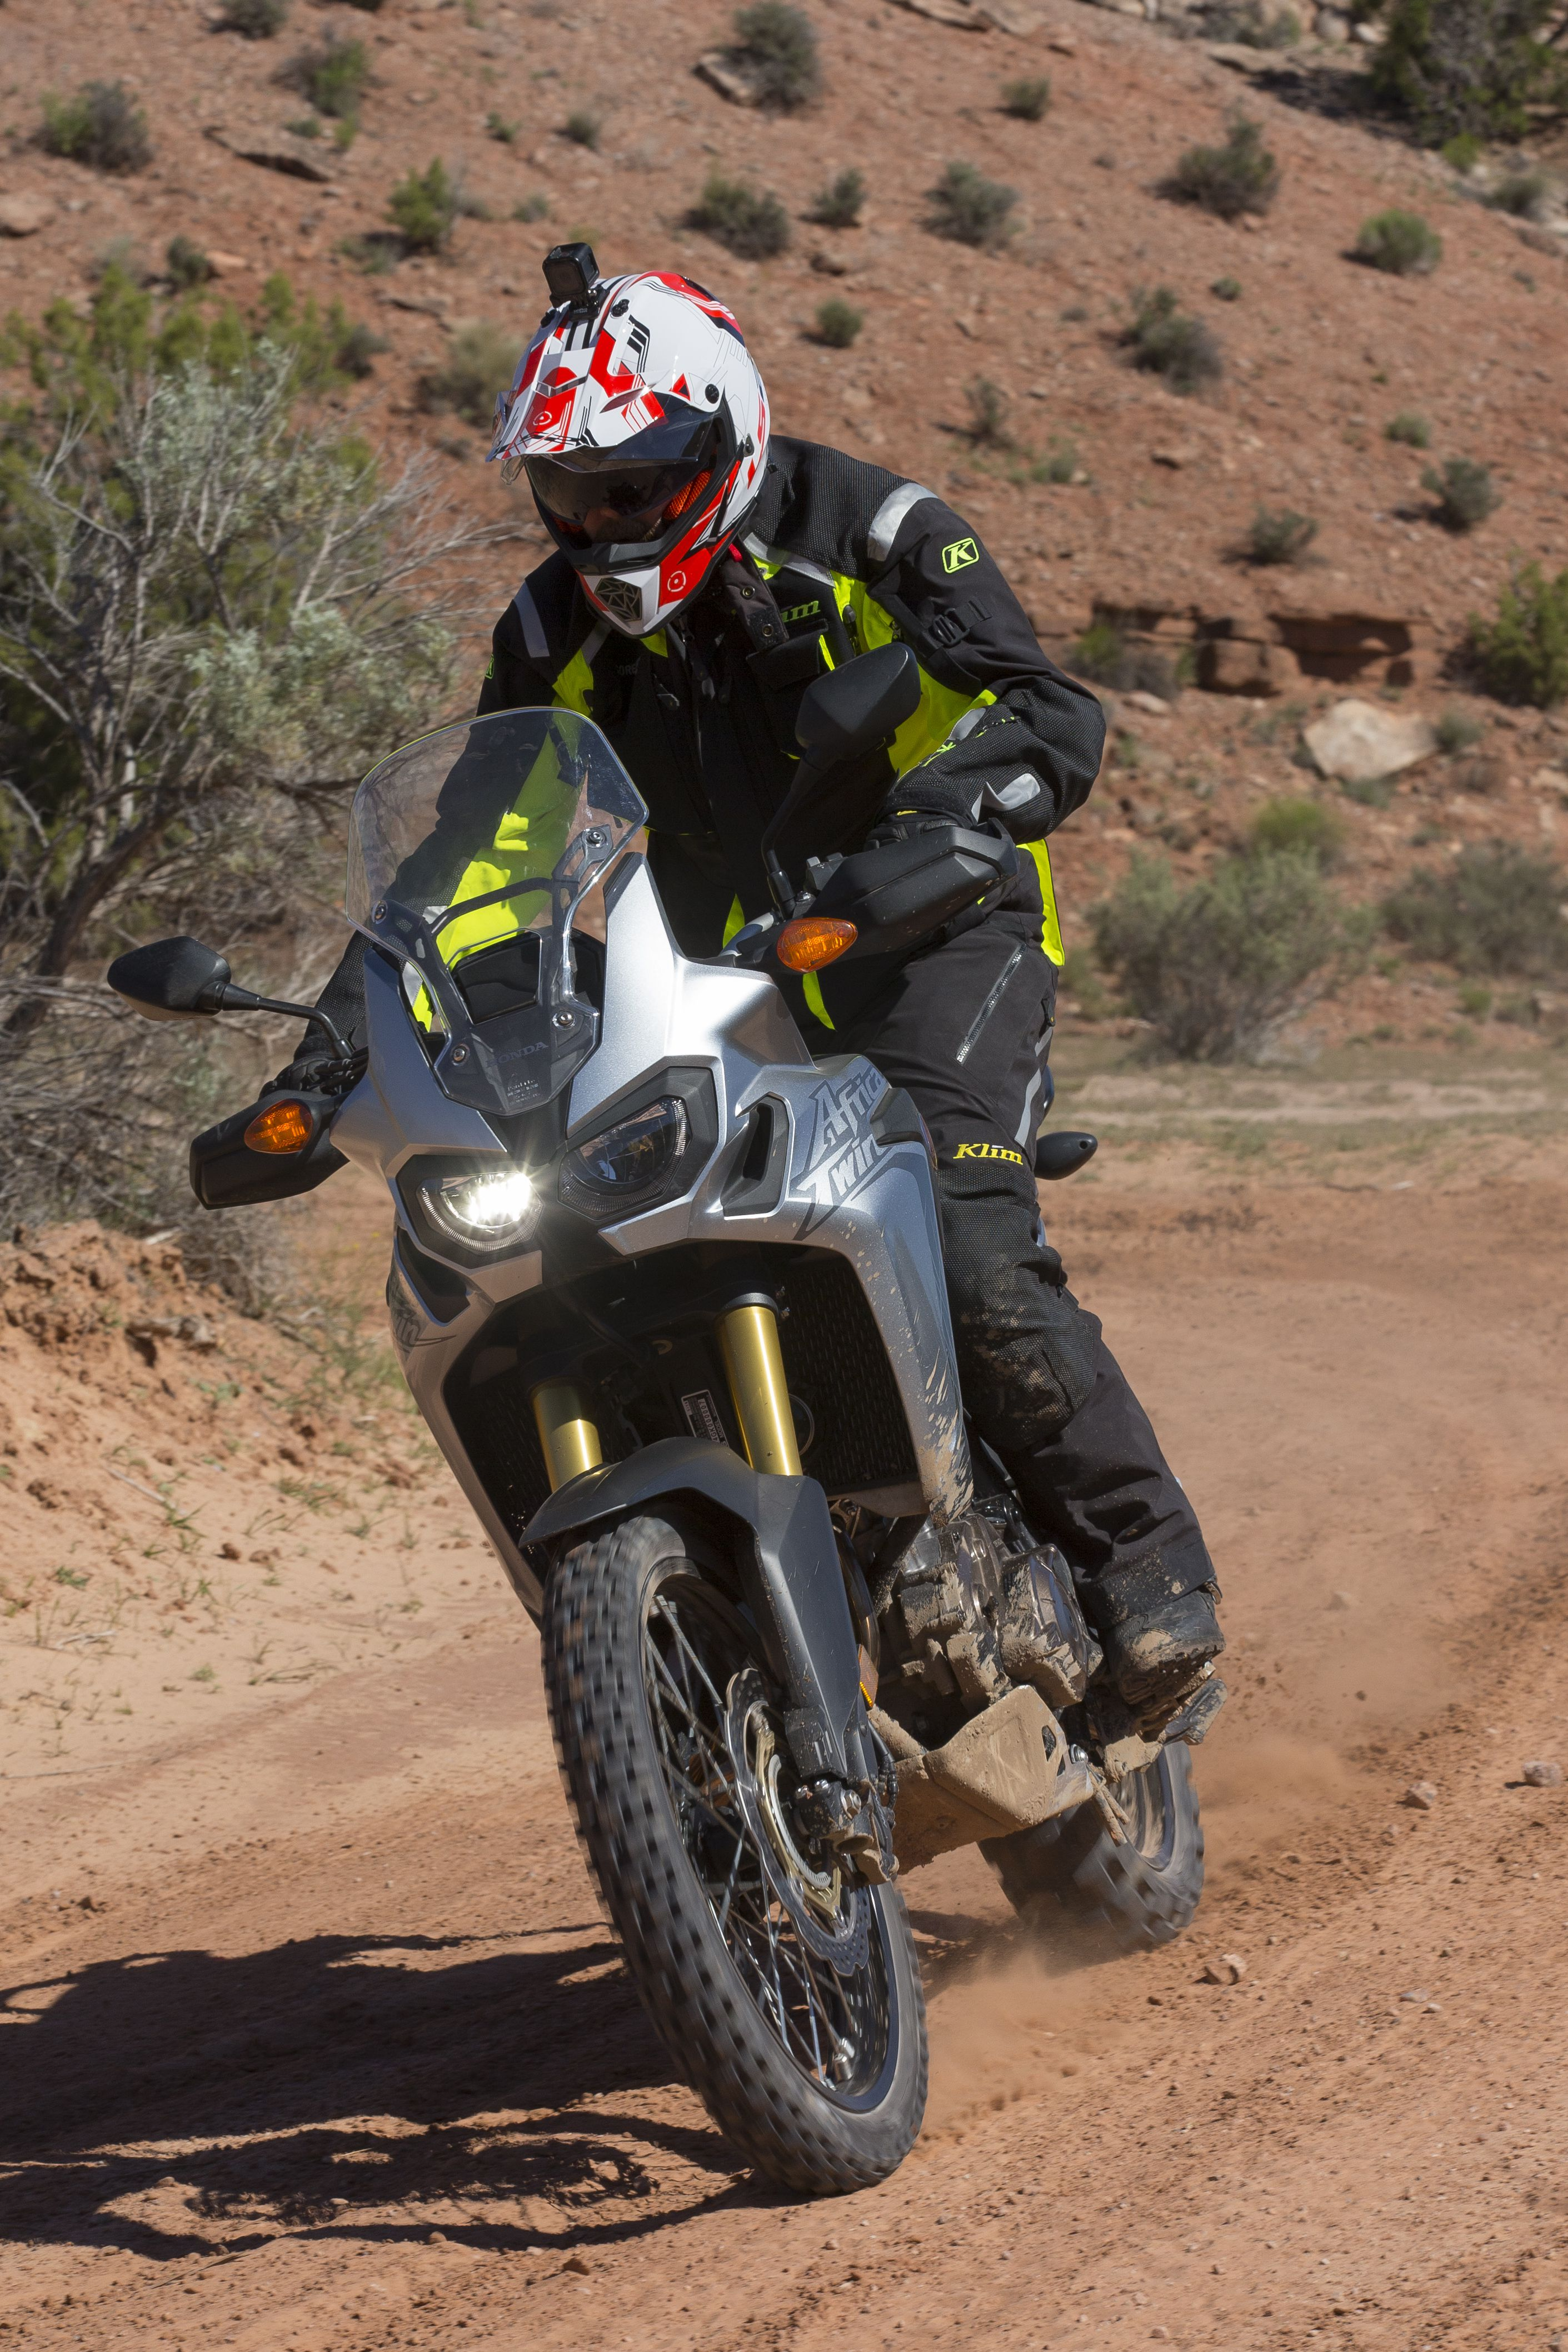 What You Need To Know About The Africa Twin – Parallel Twin